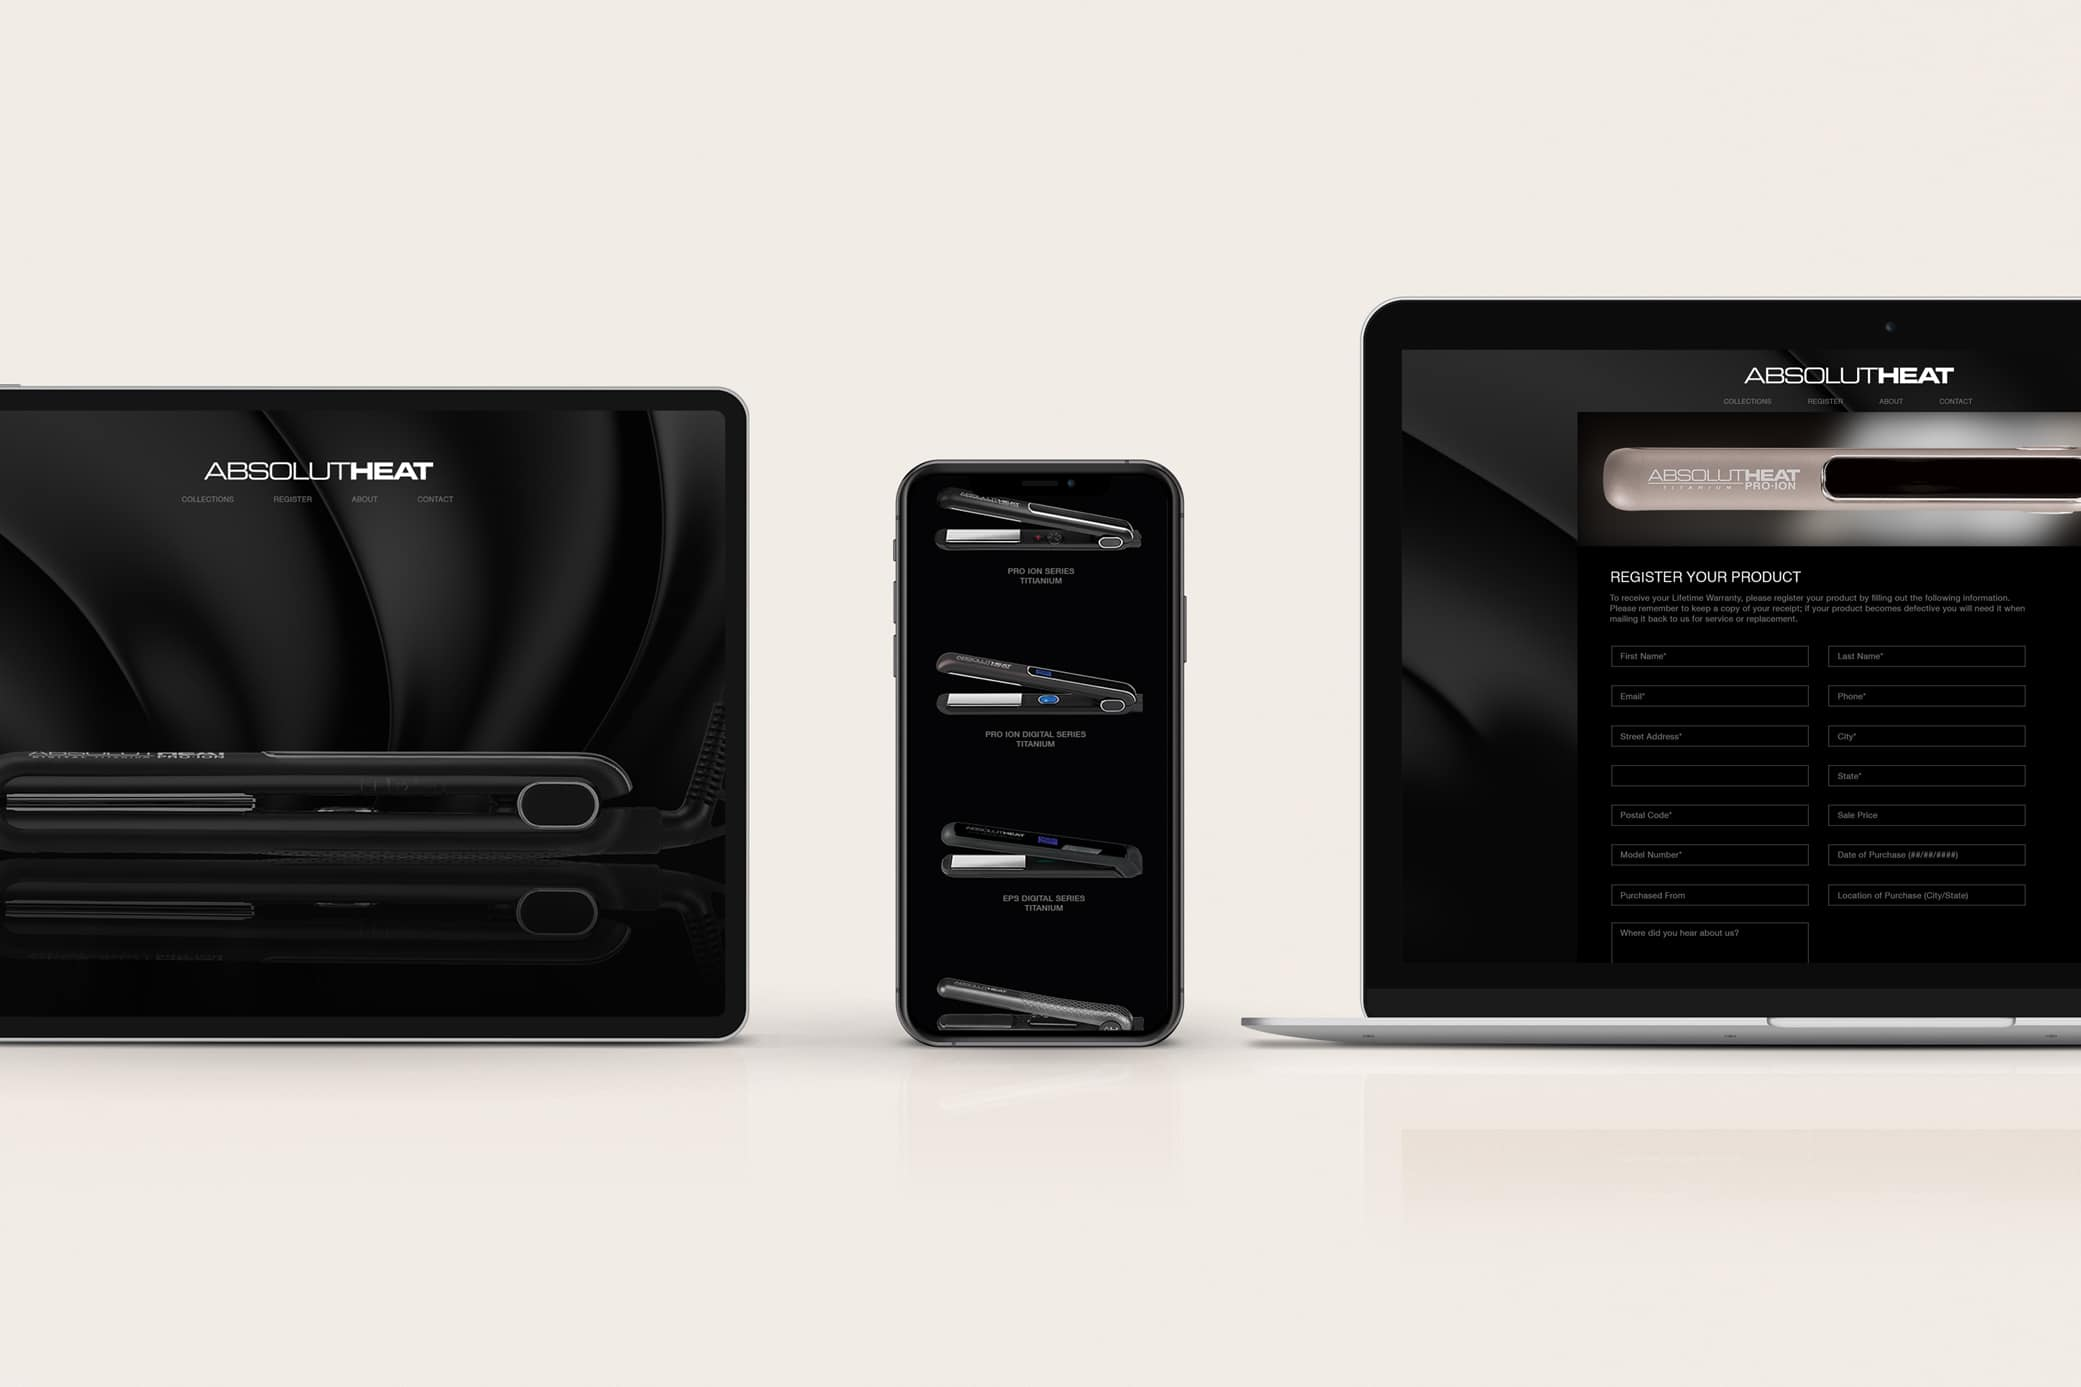 Beauty products web design, AbsolutHeat, showcasing its homepage in black with hero image and other pages featuring their flat iron tools.